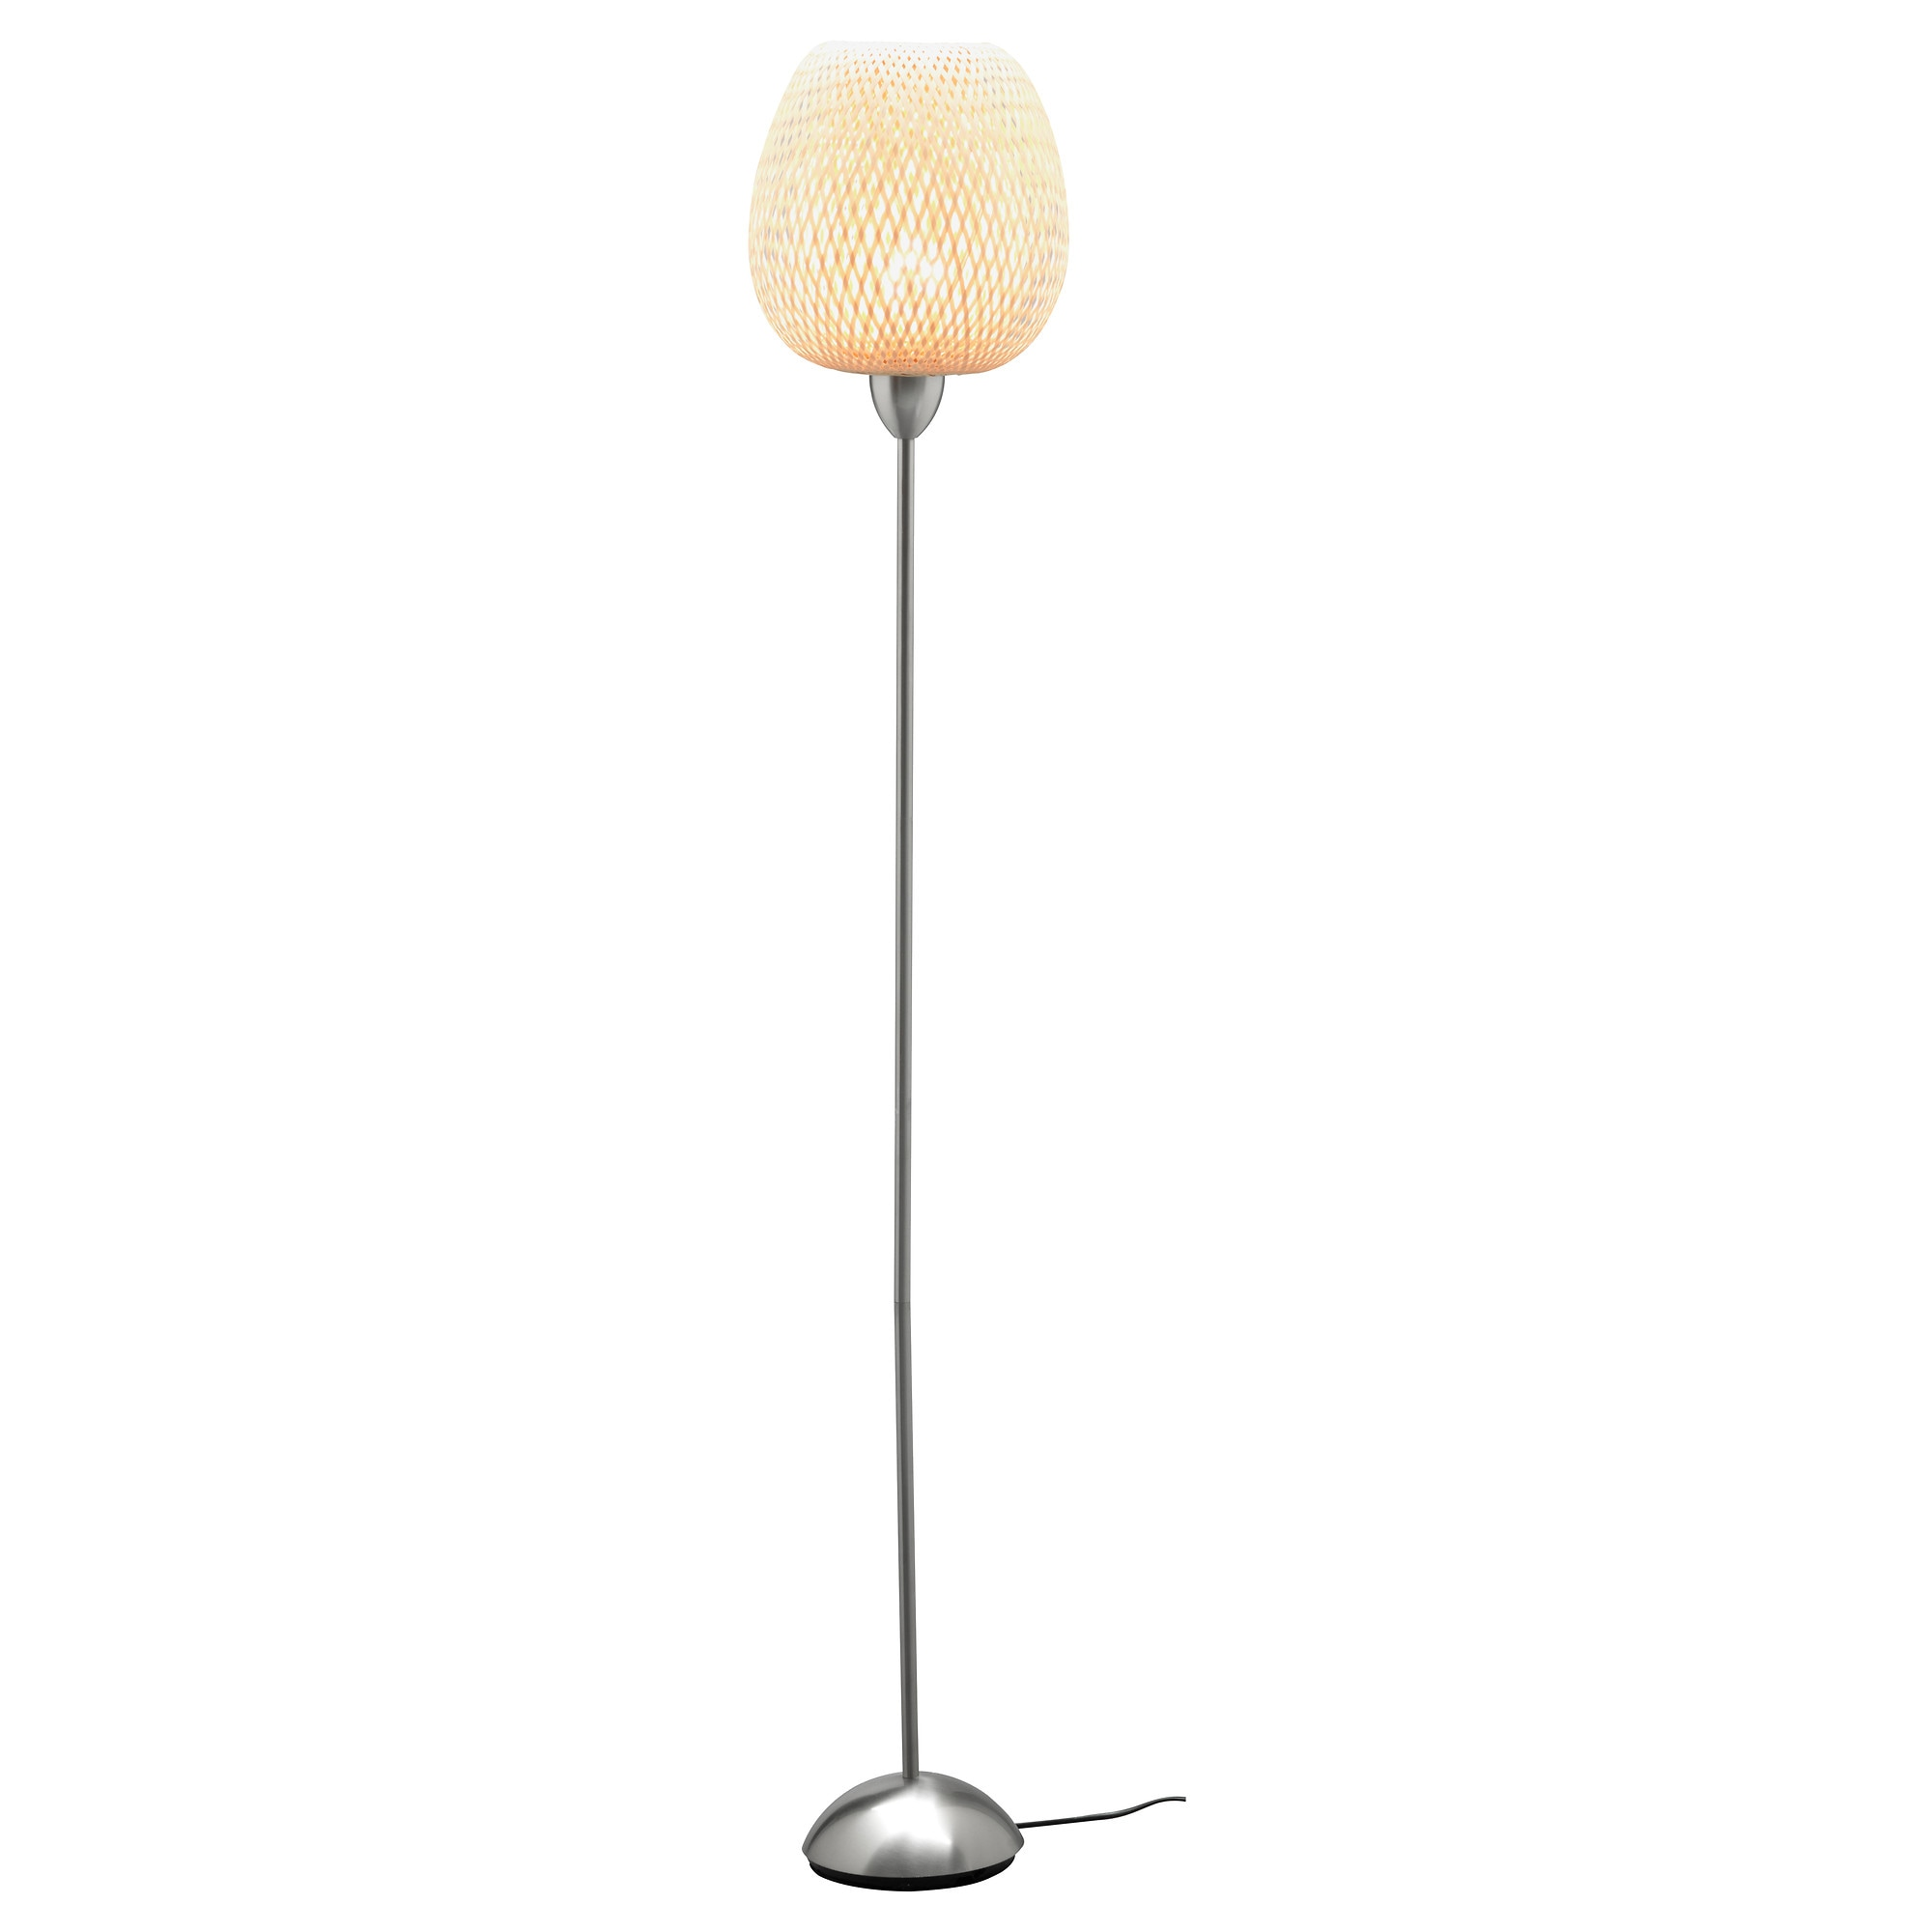 BÖJA Floor lamp with LED bulb - IKEA for Bamboo Lamp Shade Ikea  10lpwja